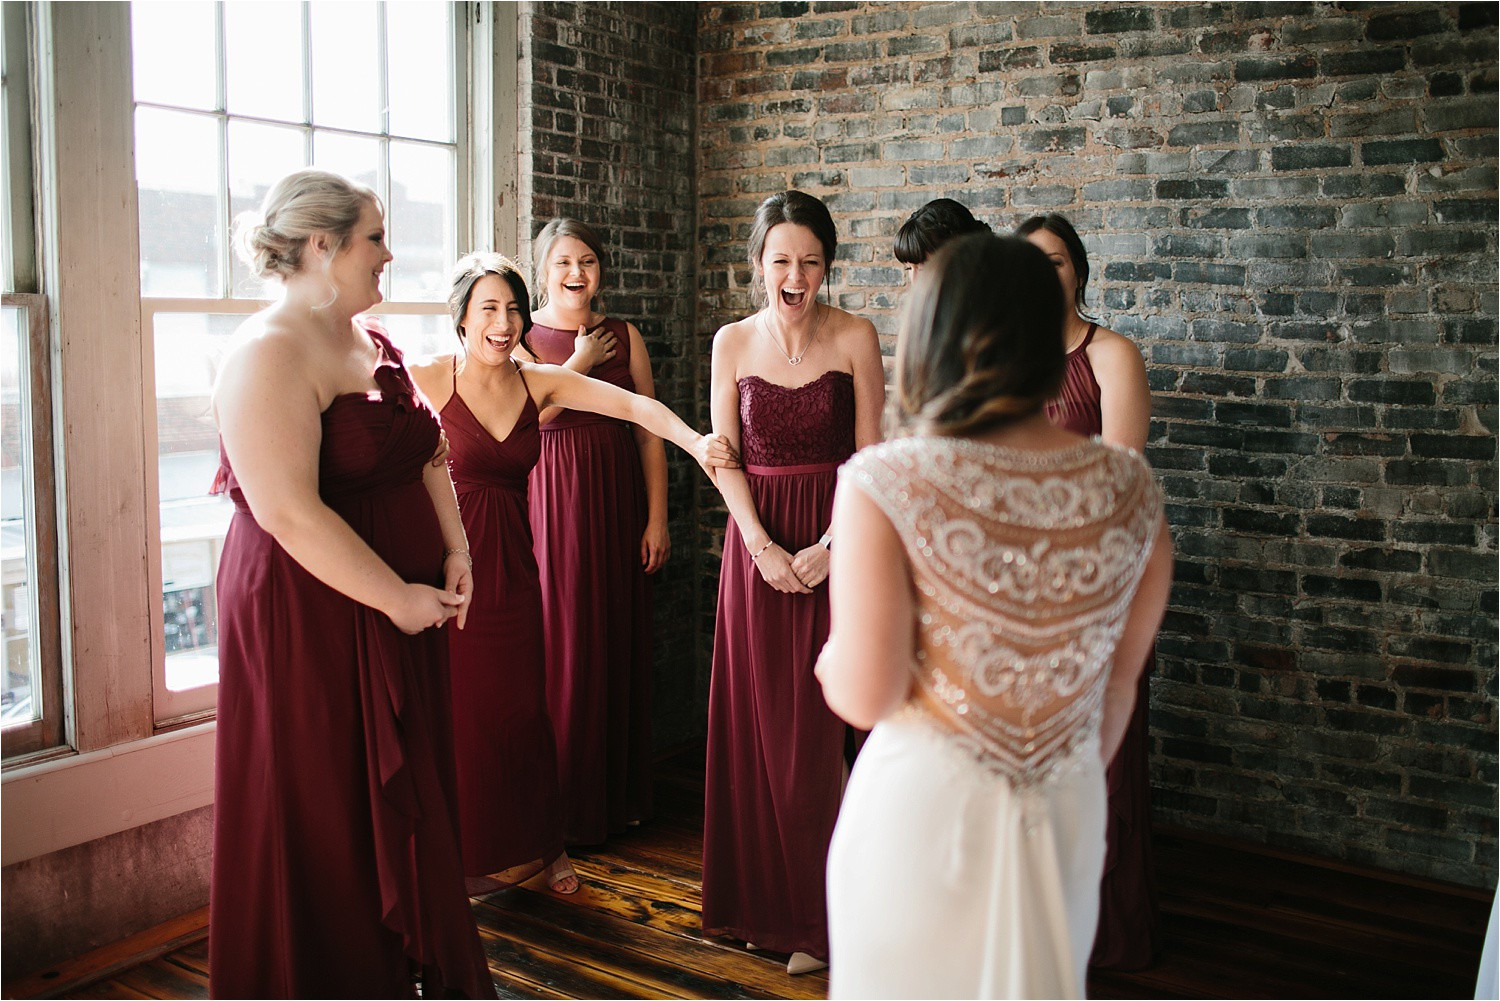 whittney-drew-__-an-intimate-wine-and-navy-wedding-in-an-industrial-venue-at-loft-123-in-paris-tx-by-north-texas-wedding-photographer-rachel-meagan-photography-_-015